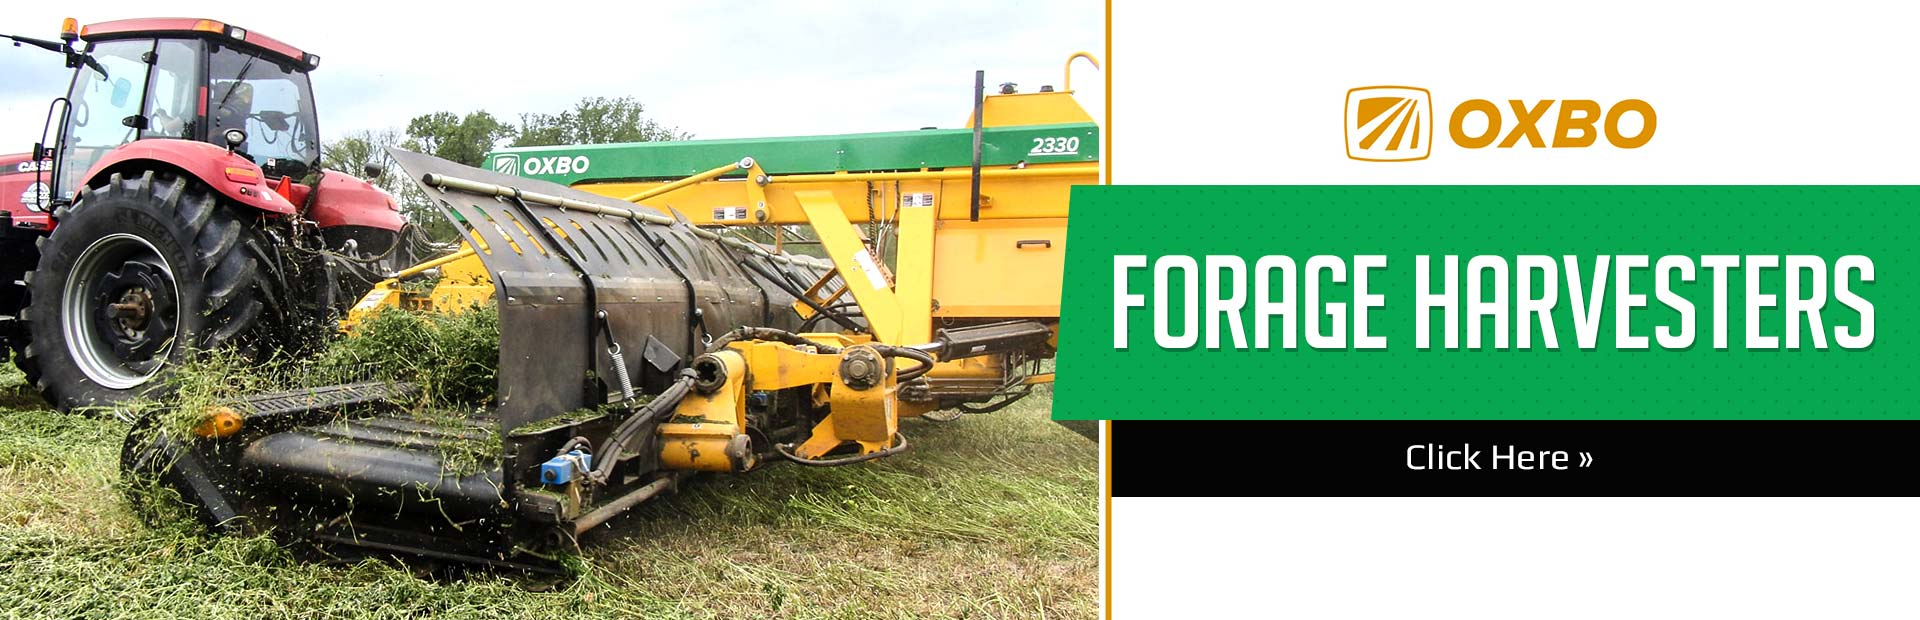 OXBO Forage Harvesters: Click here to view the lineup.